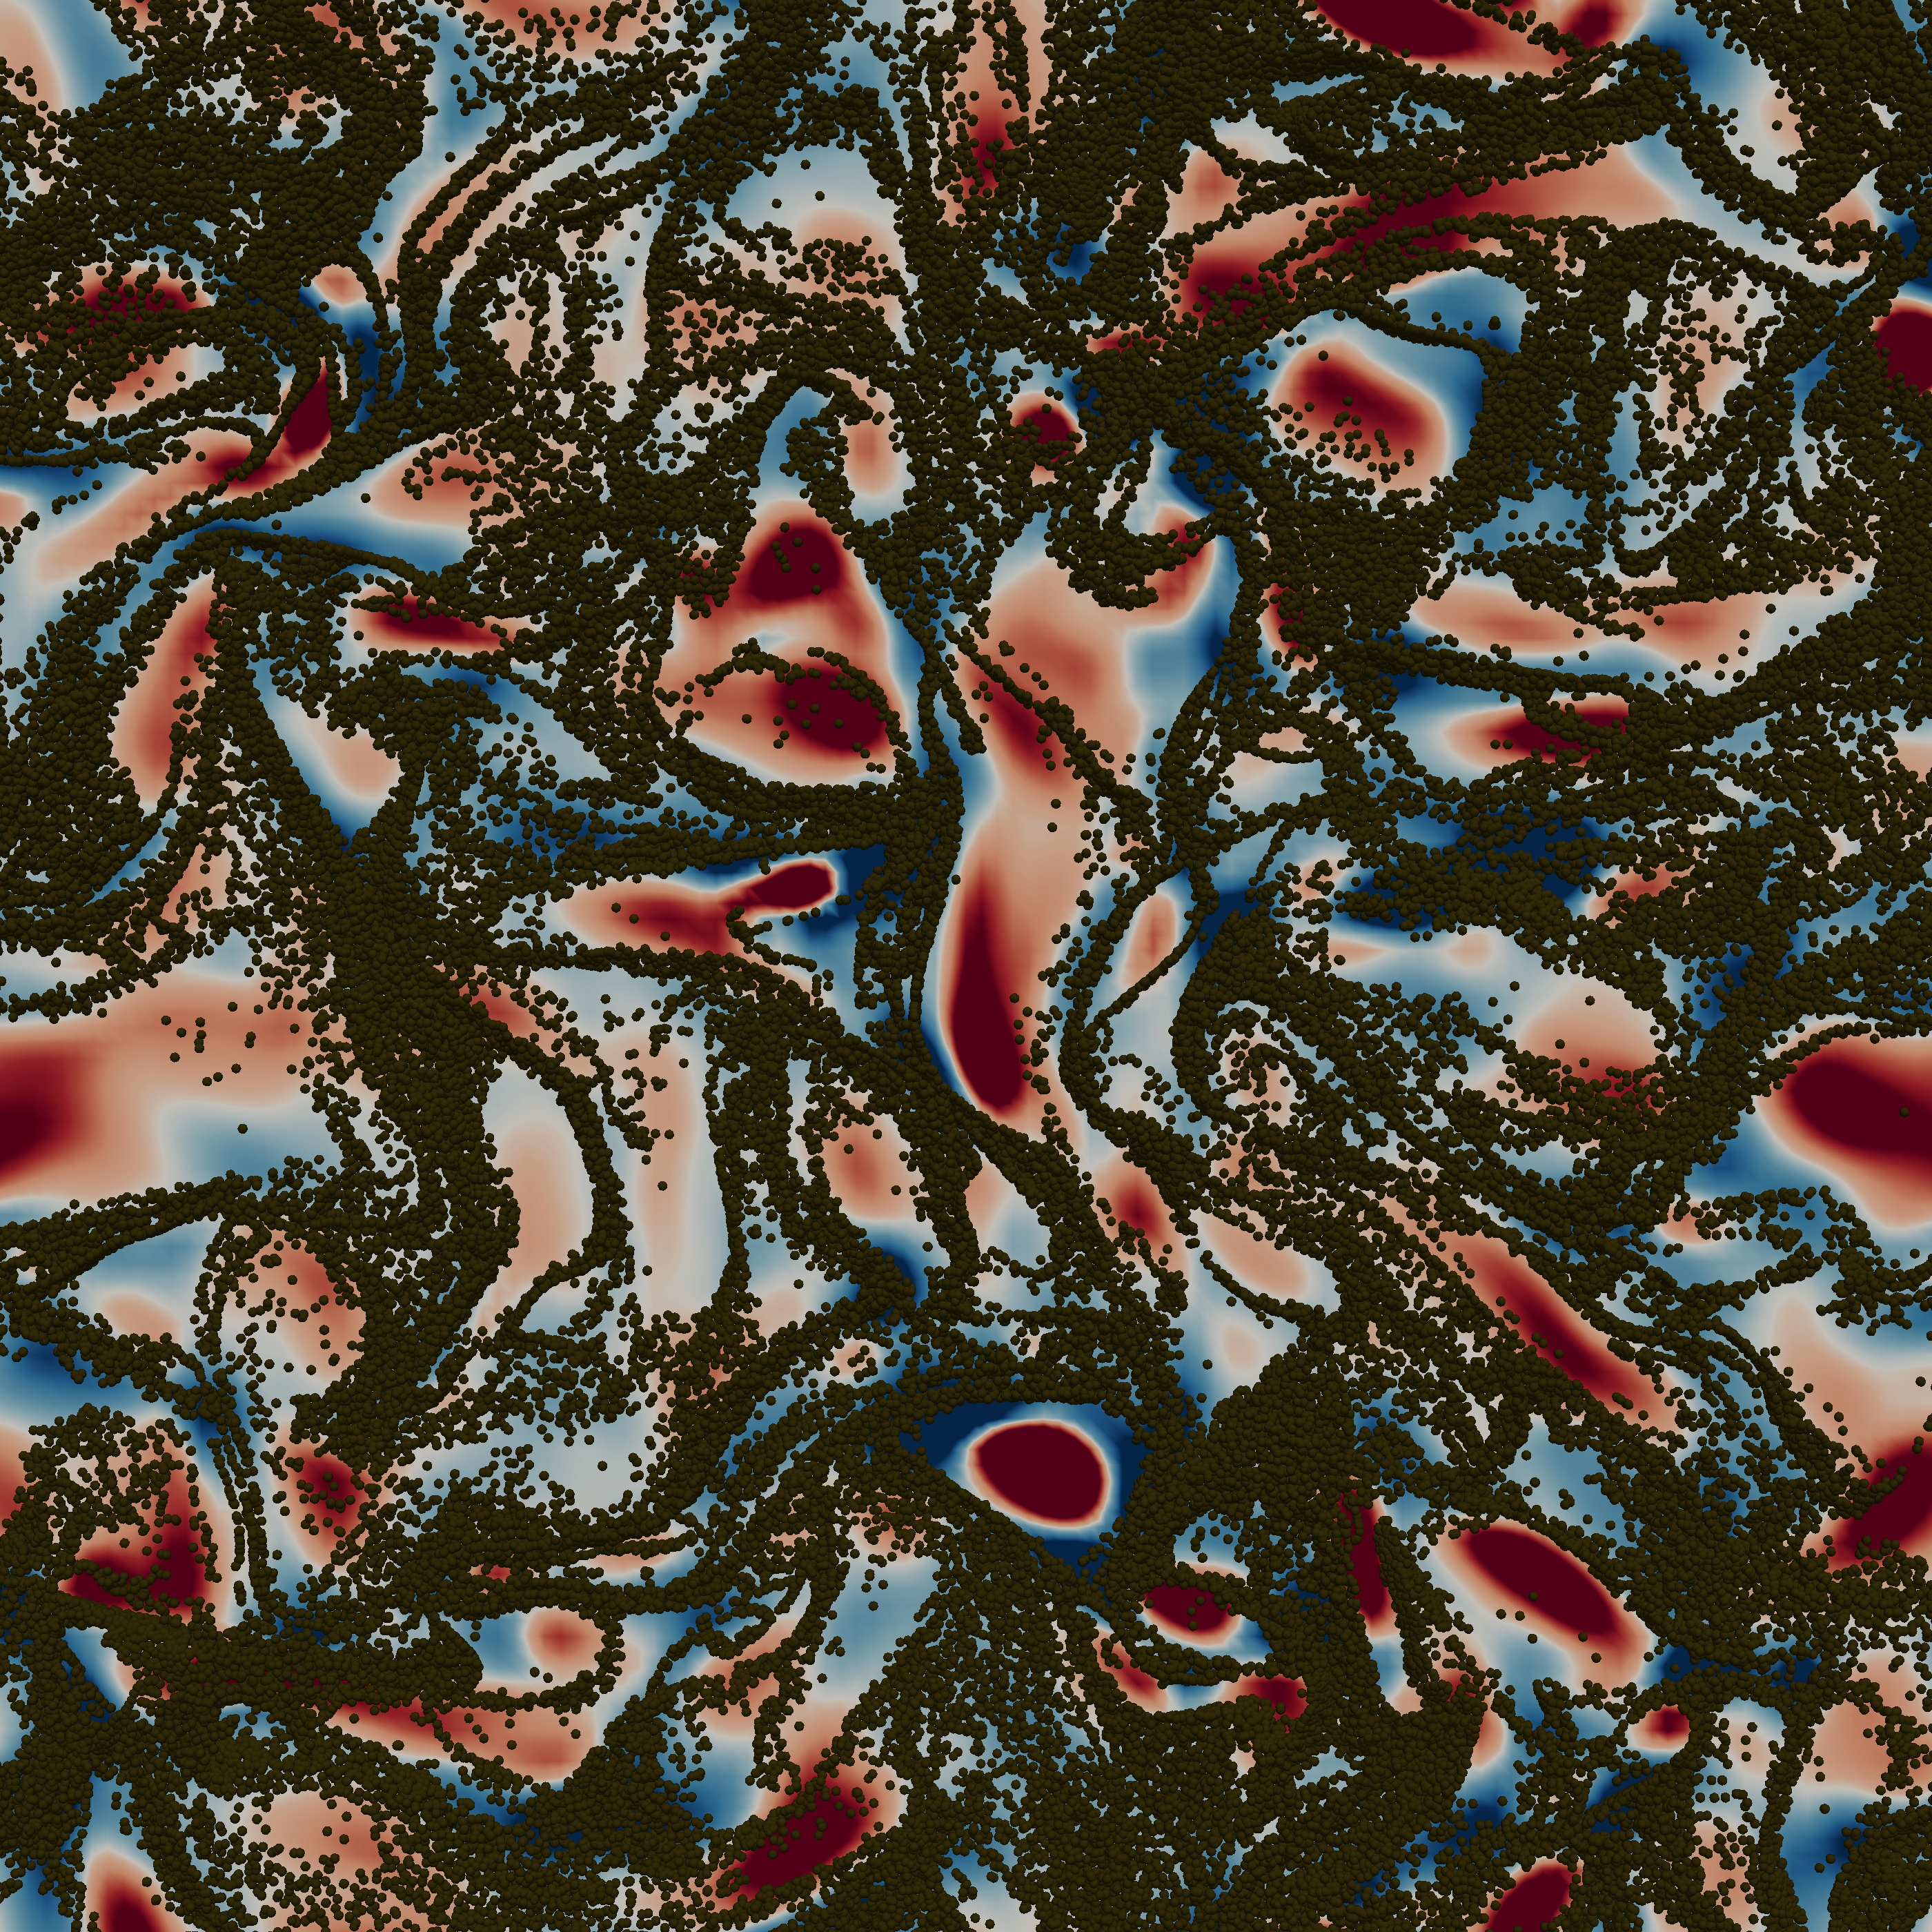 <p>Slice from a 3D two-way coupled DNS homogeneous isotropic turbulent flow containing 20 million solid particles. The background represents the Okubo-Weiss parameter, with particles avoiding red zones (vorticity overwhelms strain) and concentrating in the blue regions (the opposite). Taylor Reynolds is 35.4, Stokes 0.4 and mass loading 0.5.</p>